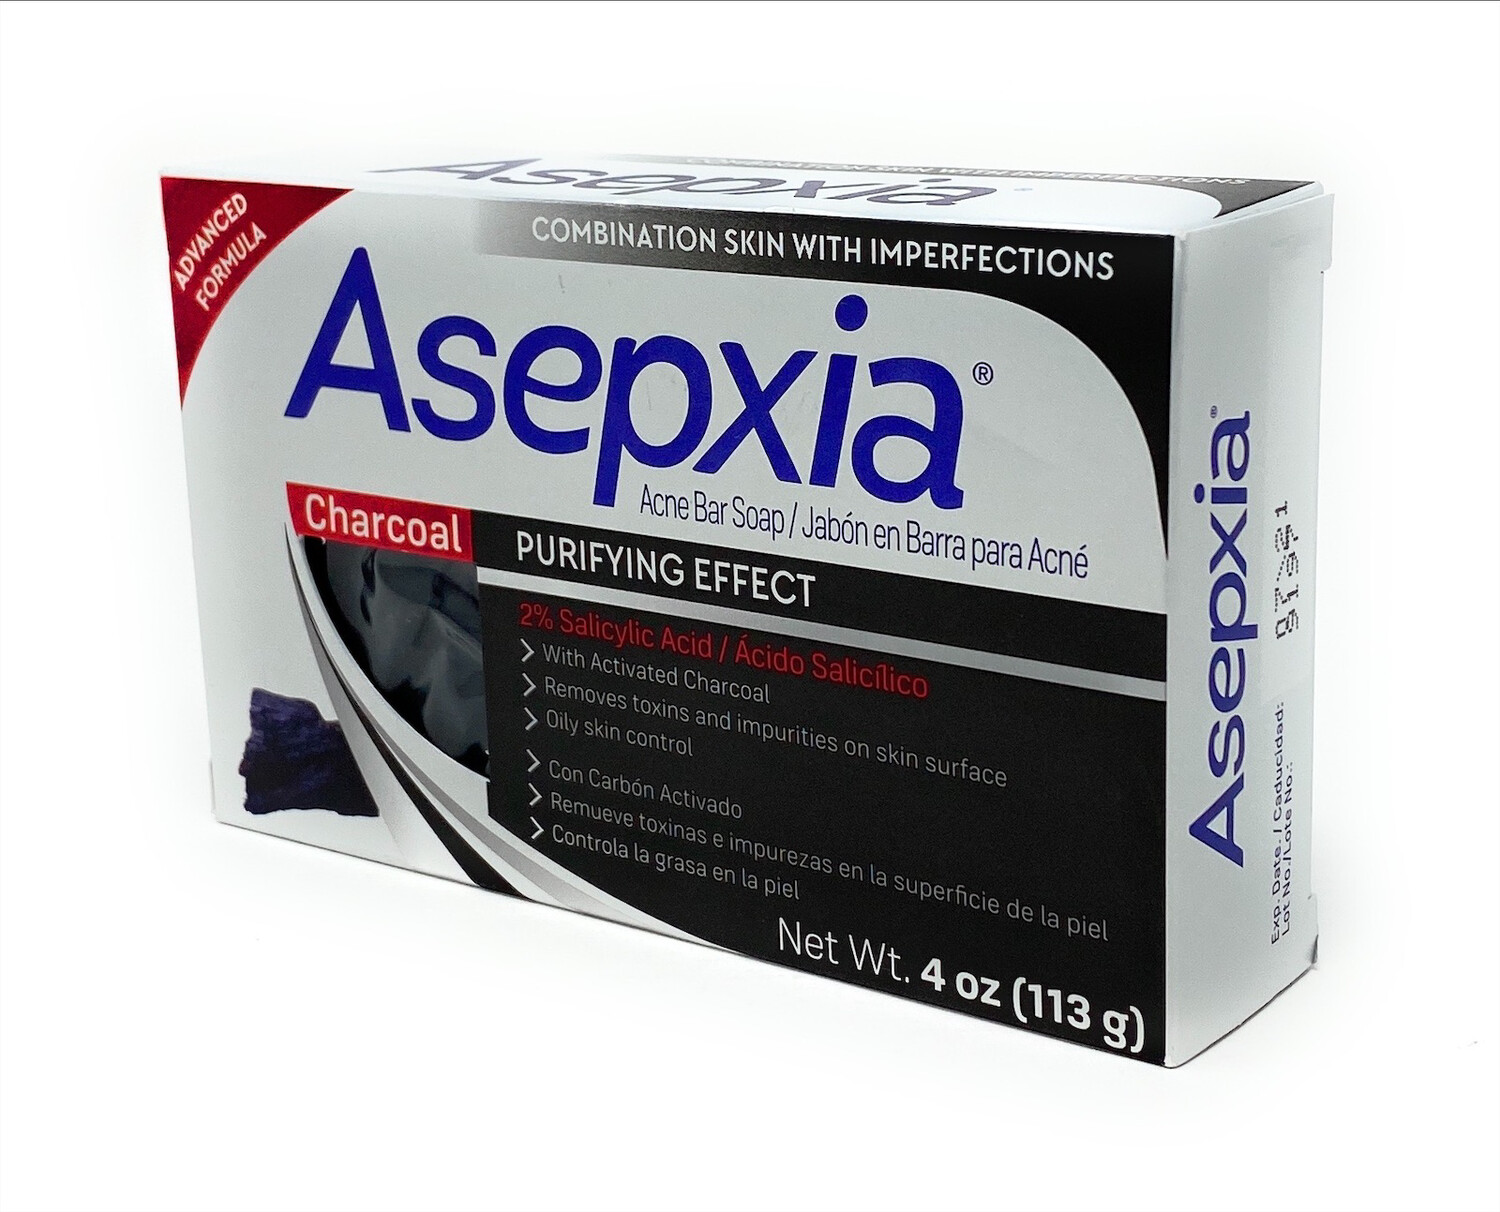 Asepxia  Charcoal Acne Bar Soap 4oz